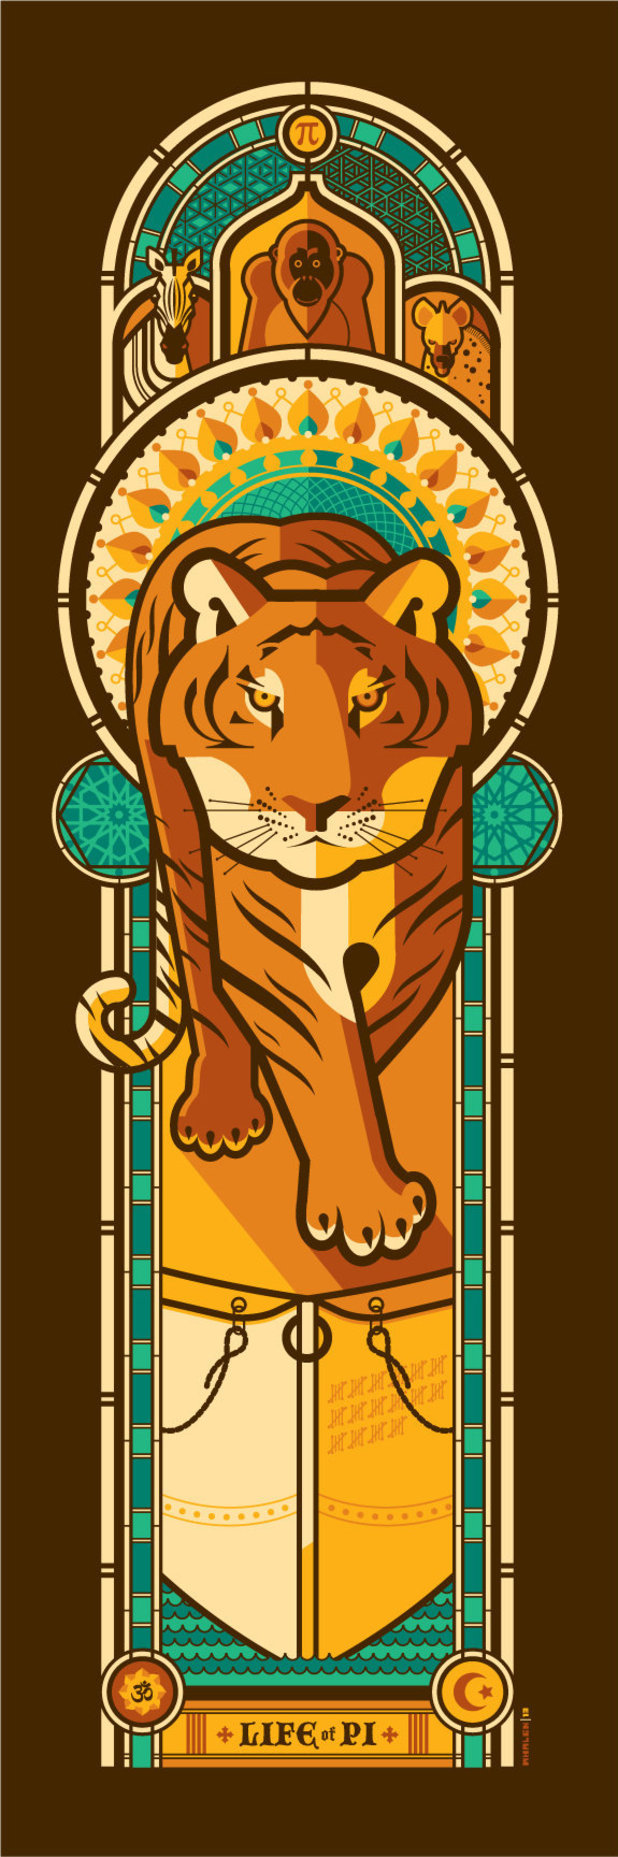 Life of PI by artist Tom Whalen.